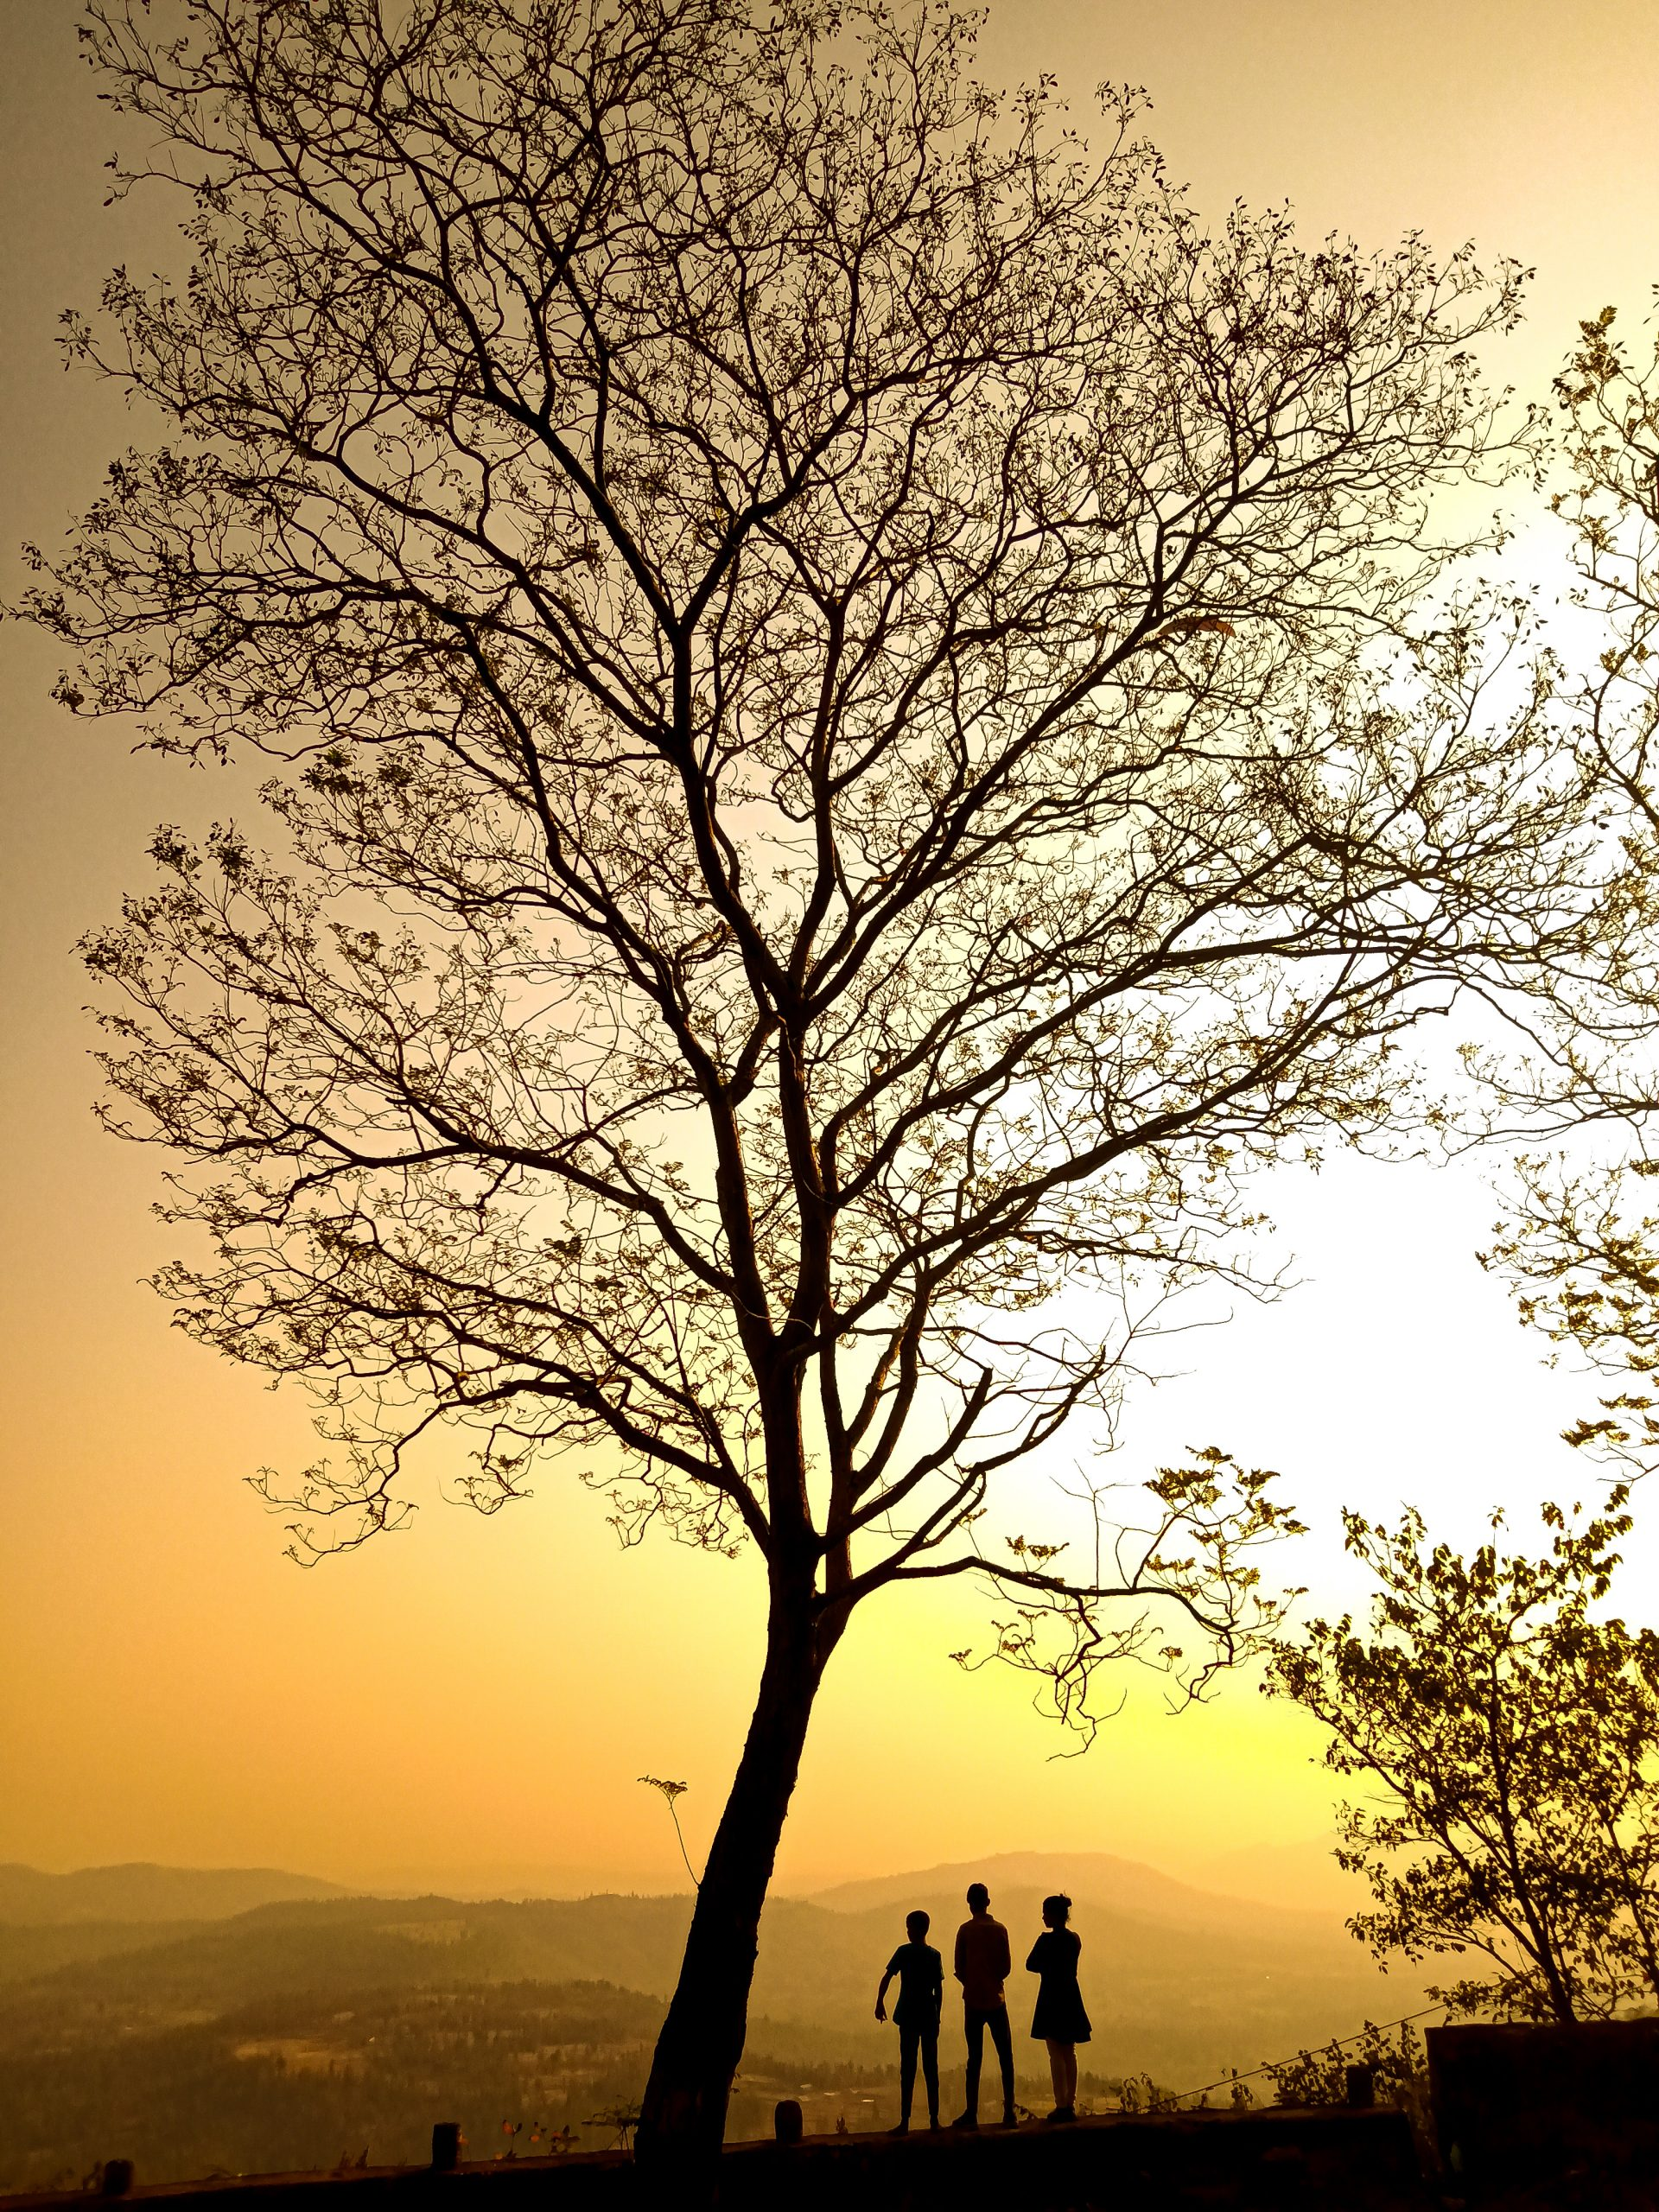 People under the dry tree during sunset